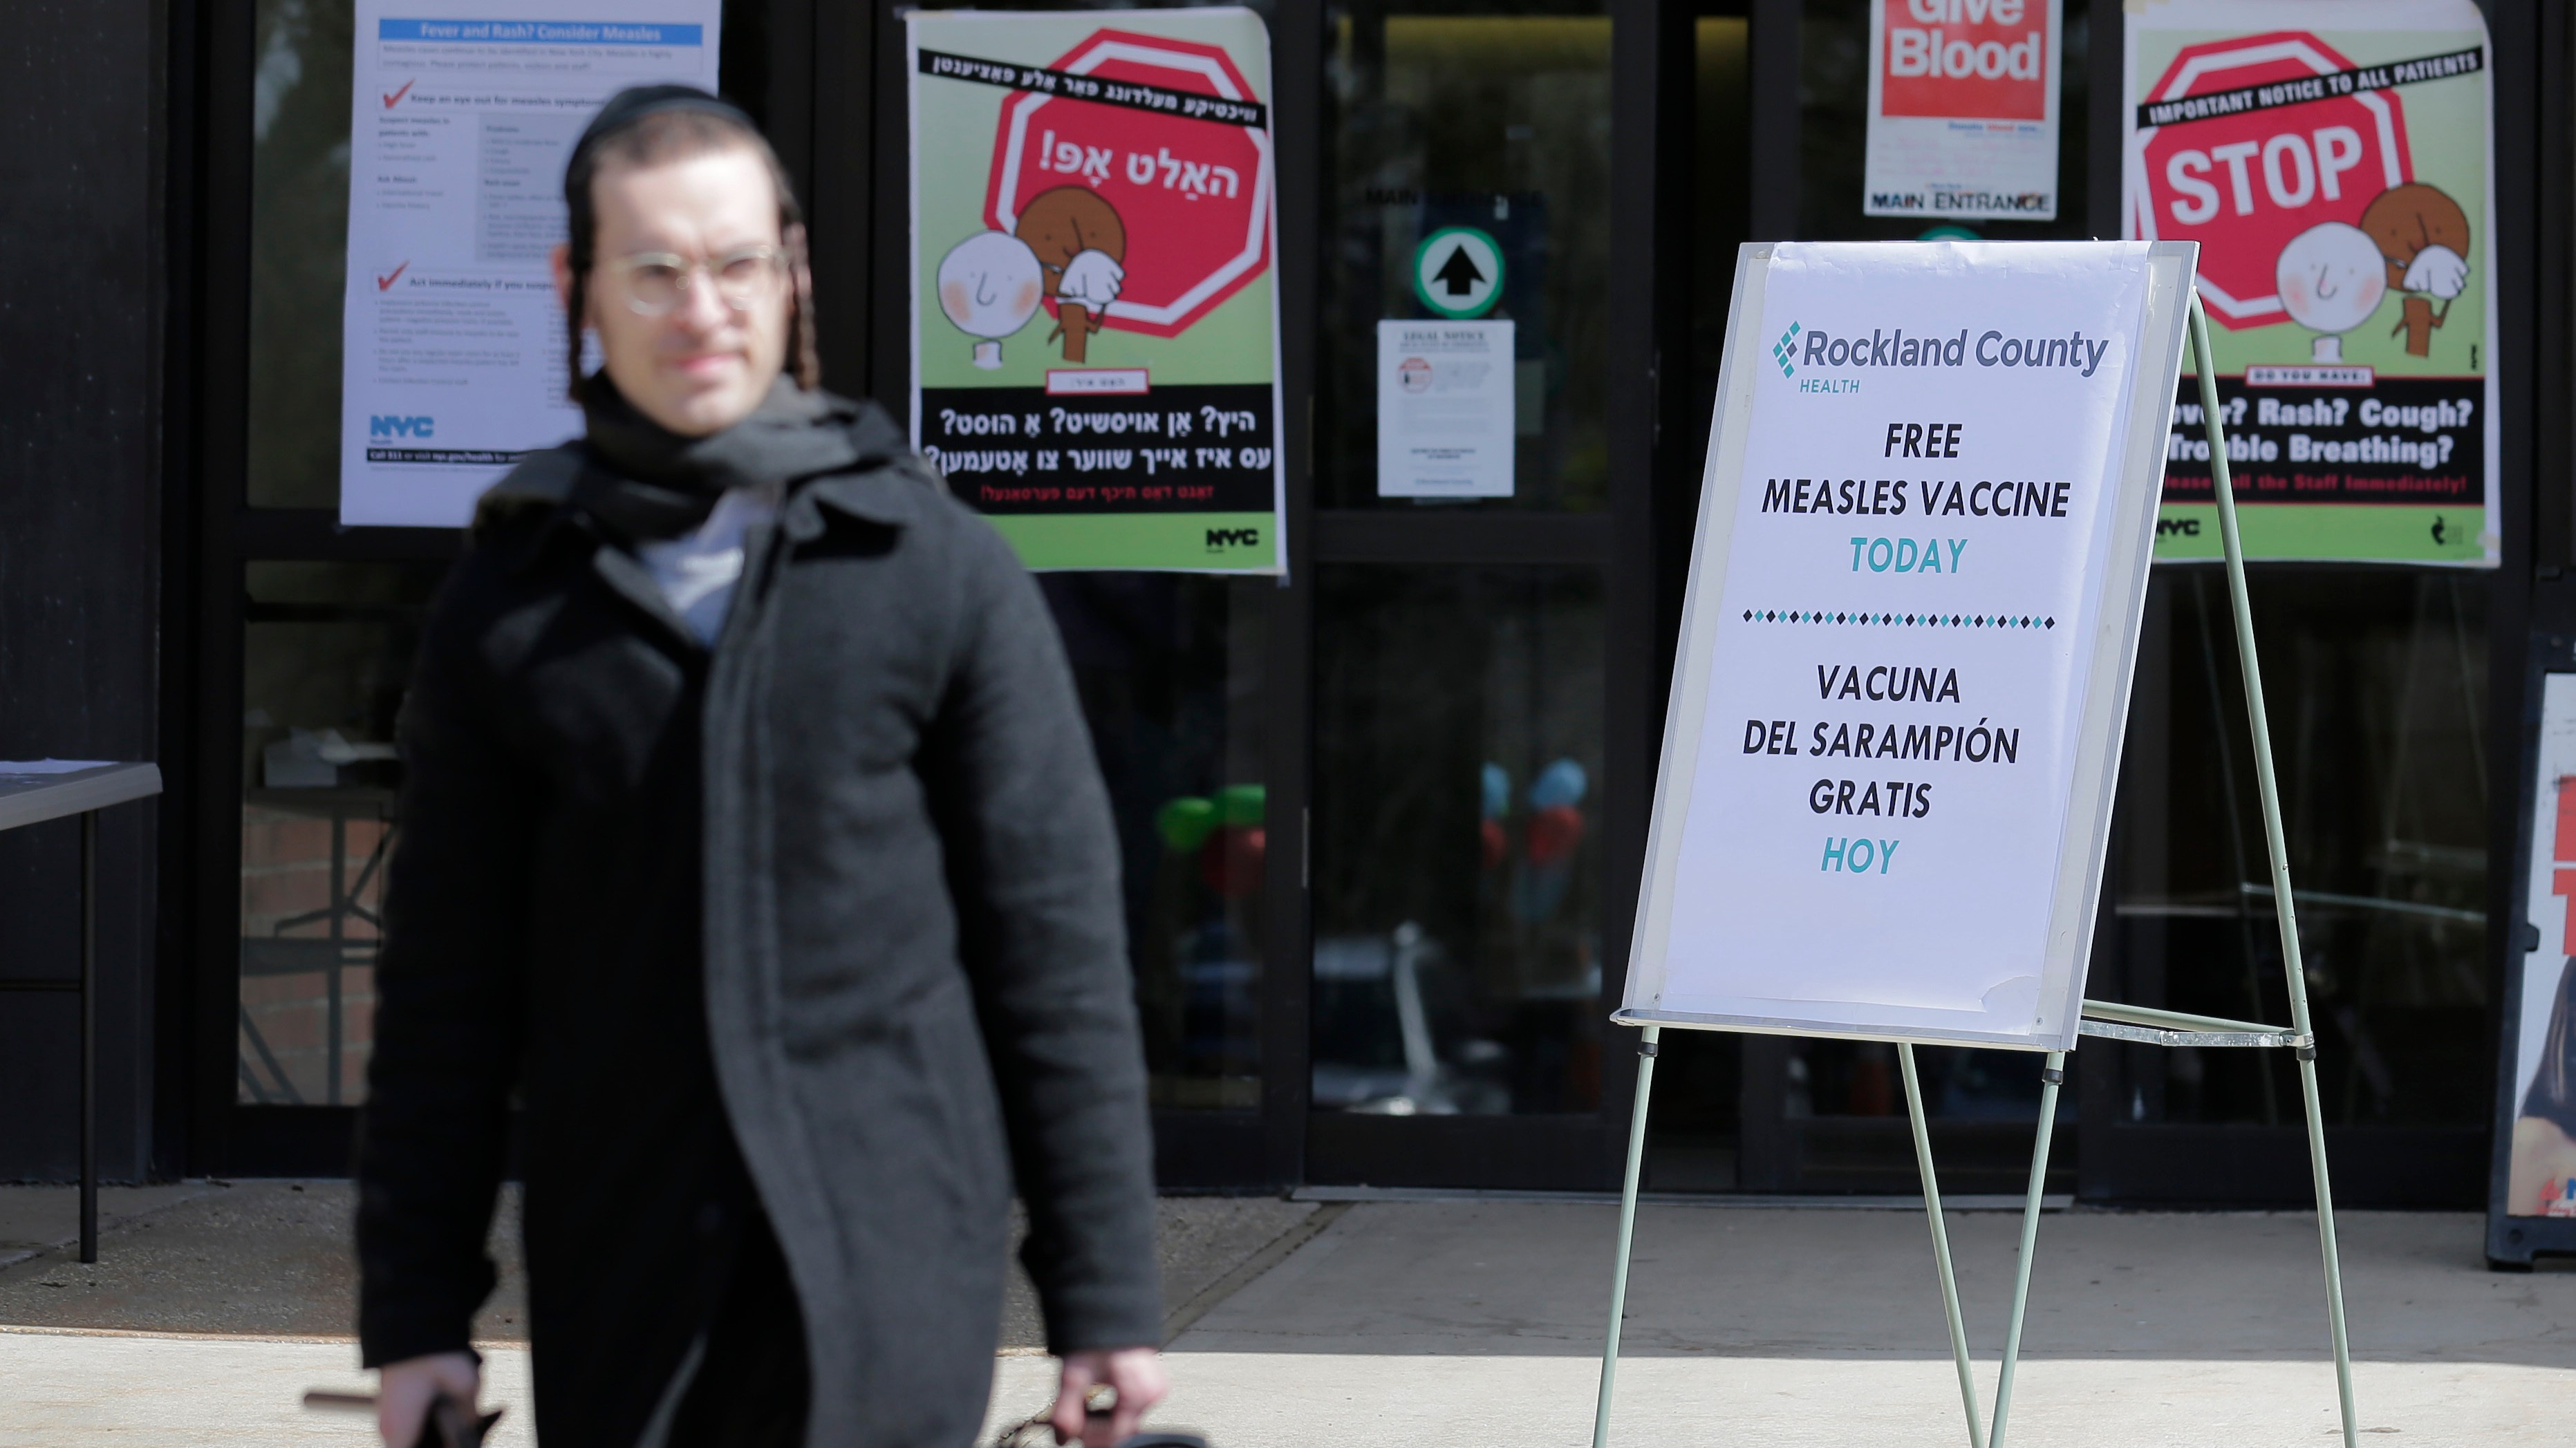 The latest move to fight measles: fines of $2,000 a day